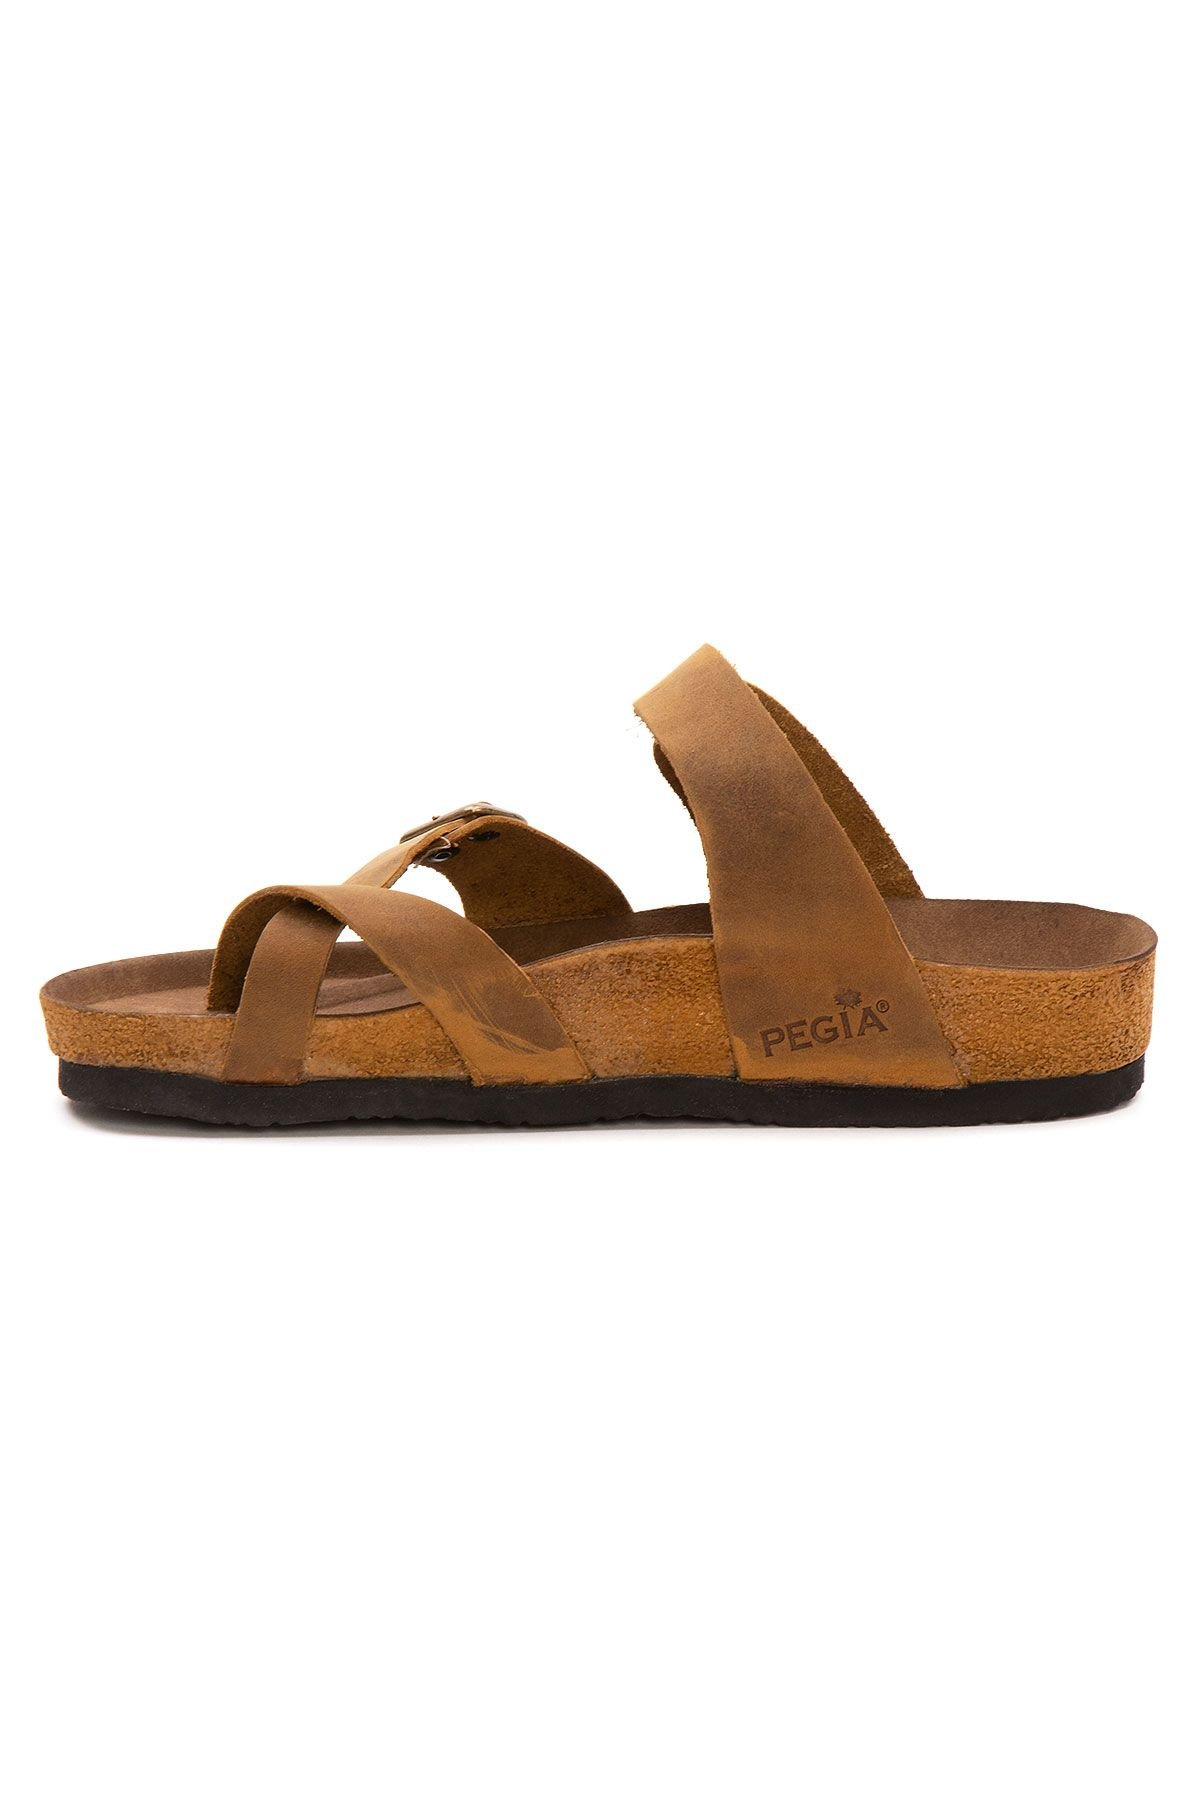 Pegia Women's Leather Slippers 215522 Ginger